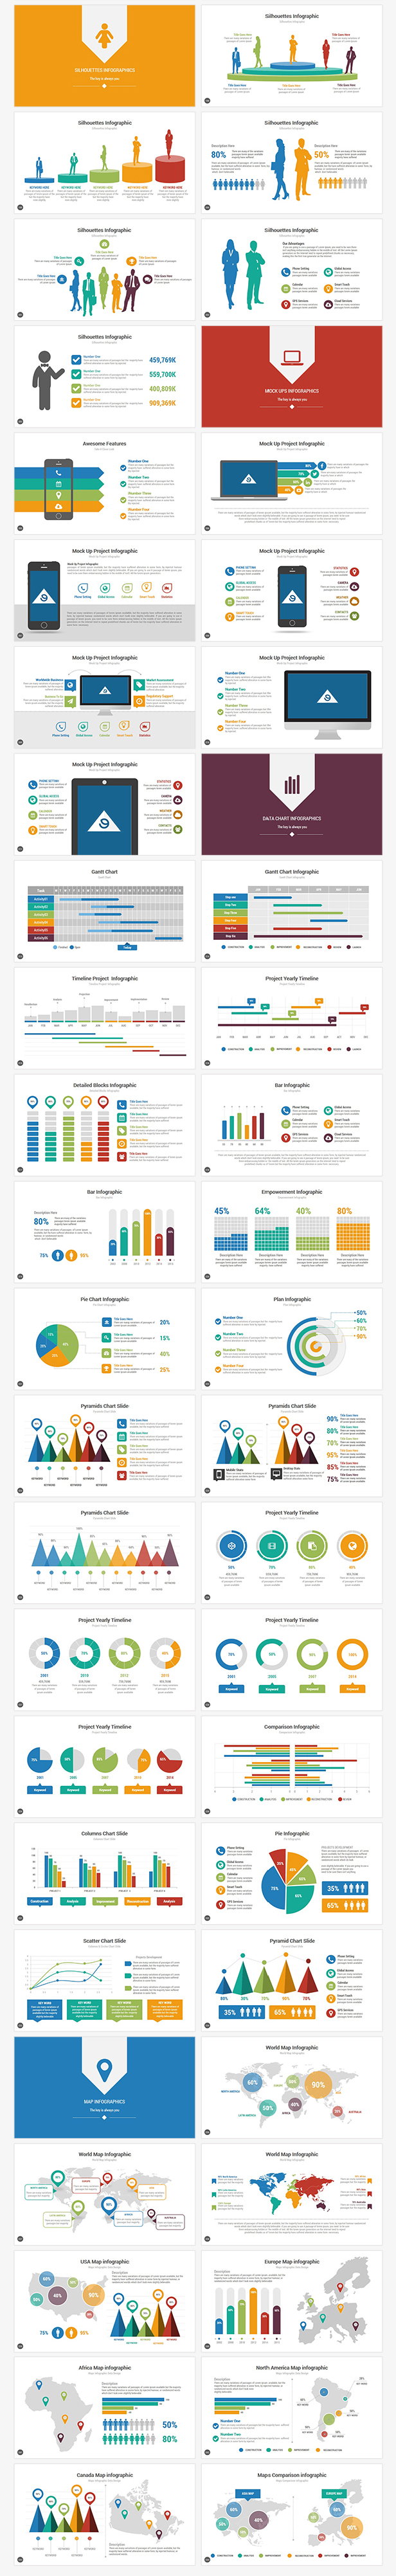 Gravity PowerPoint Presentation Template - 4